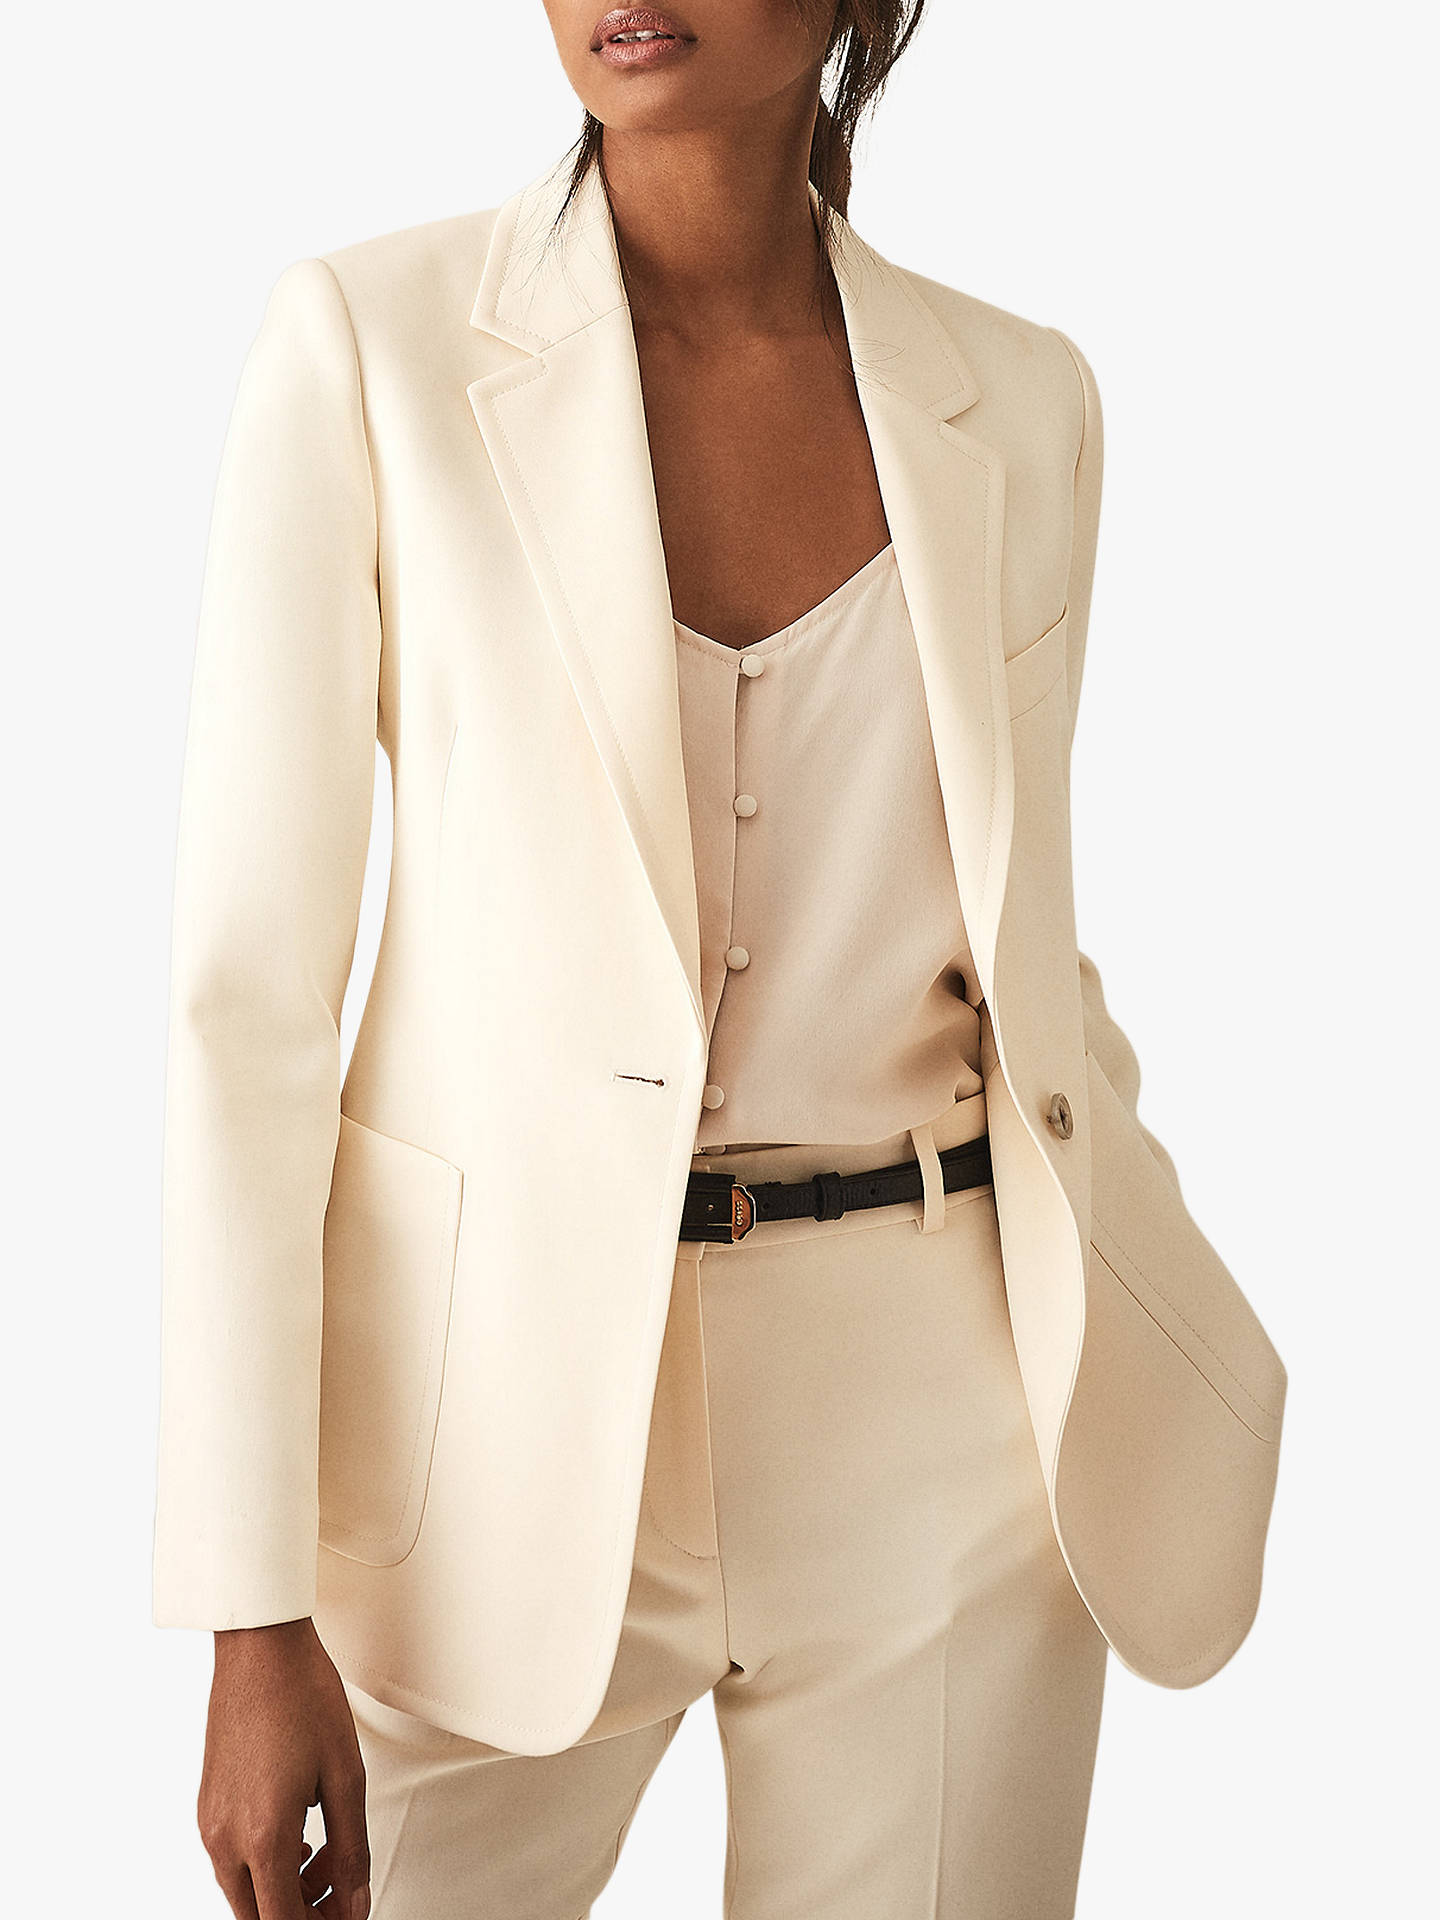 3591484bb5 Reiss Evie Tailored Jacket, Off White at John Lewis & Partners